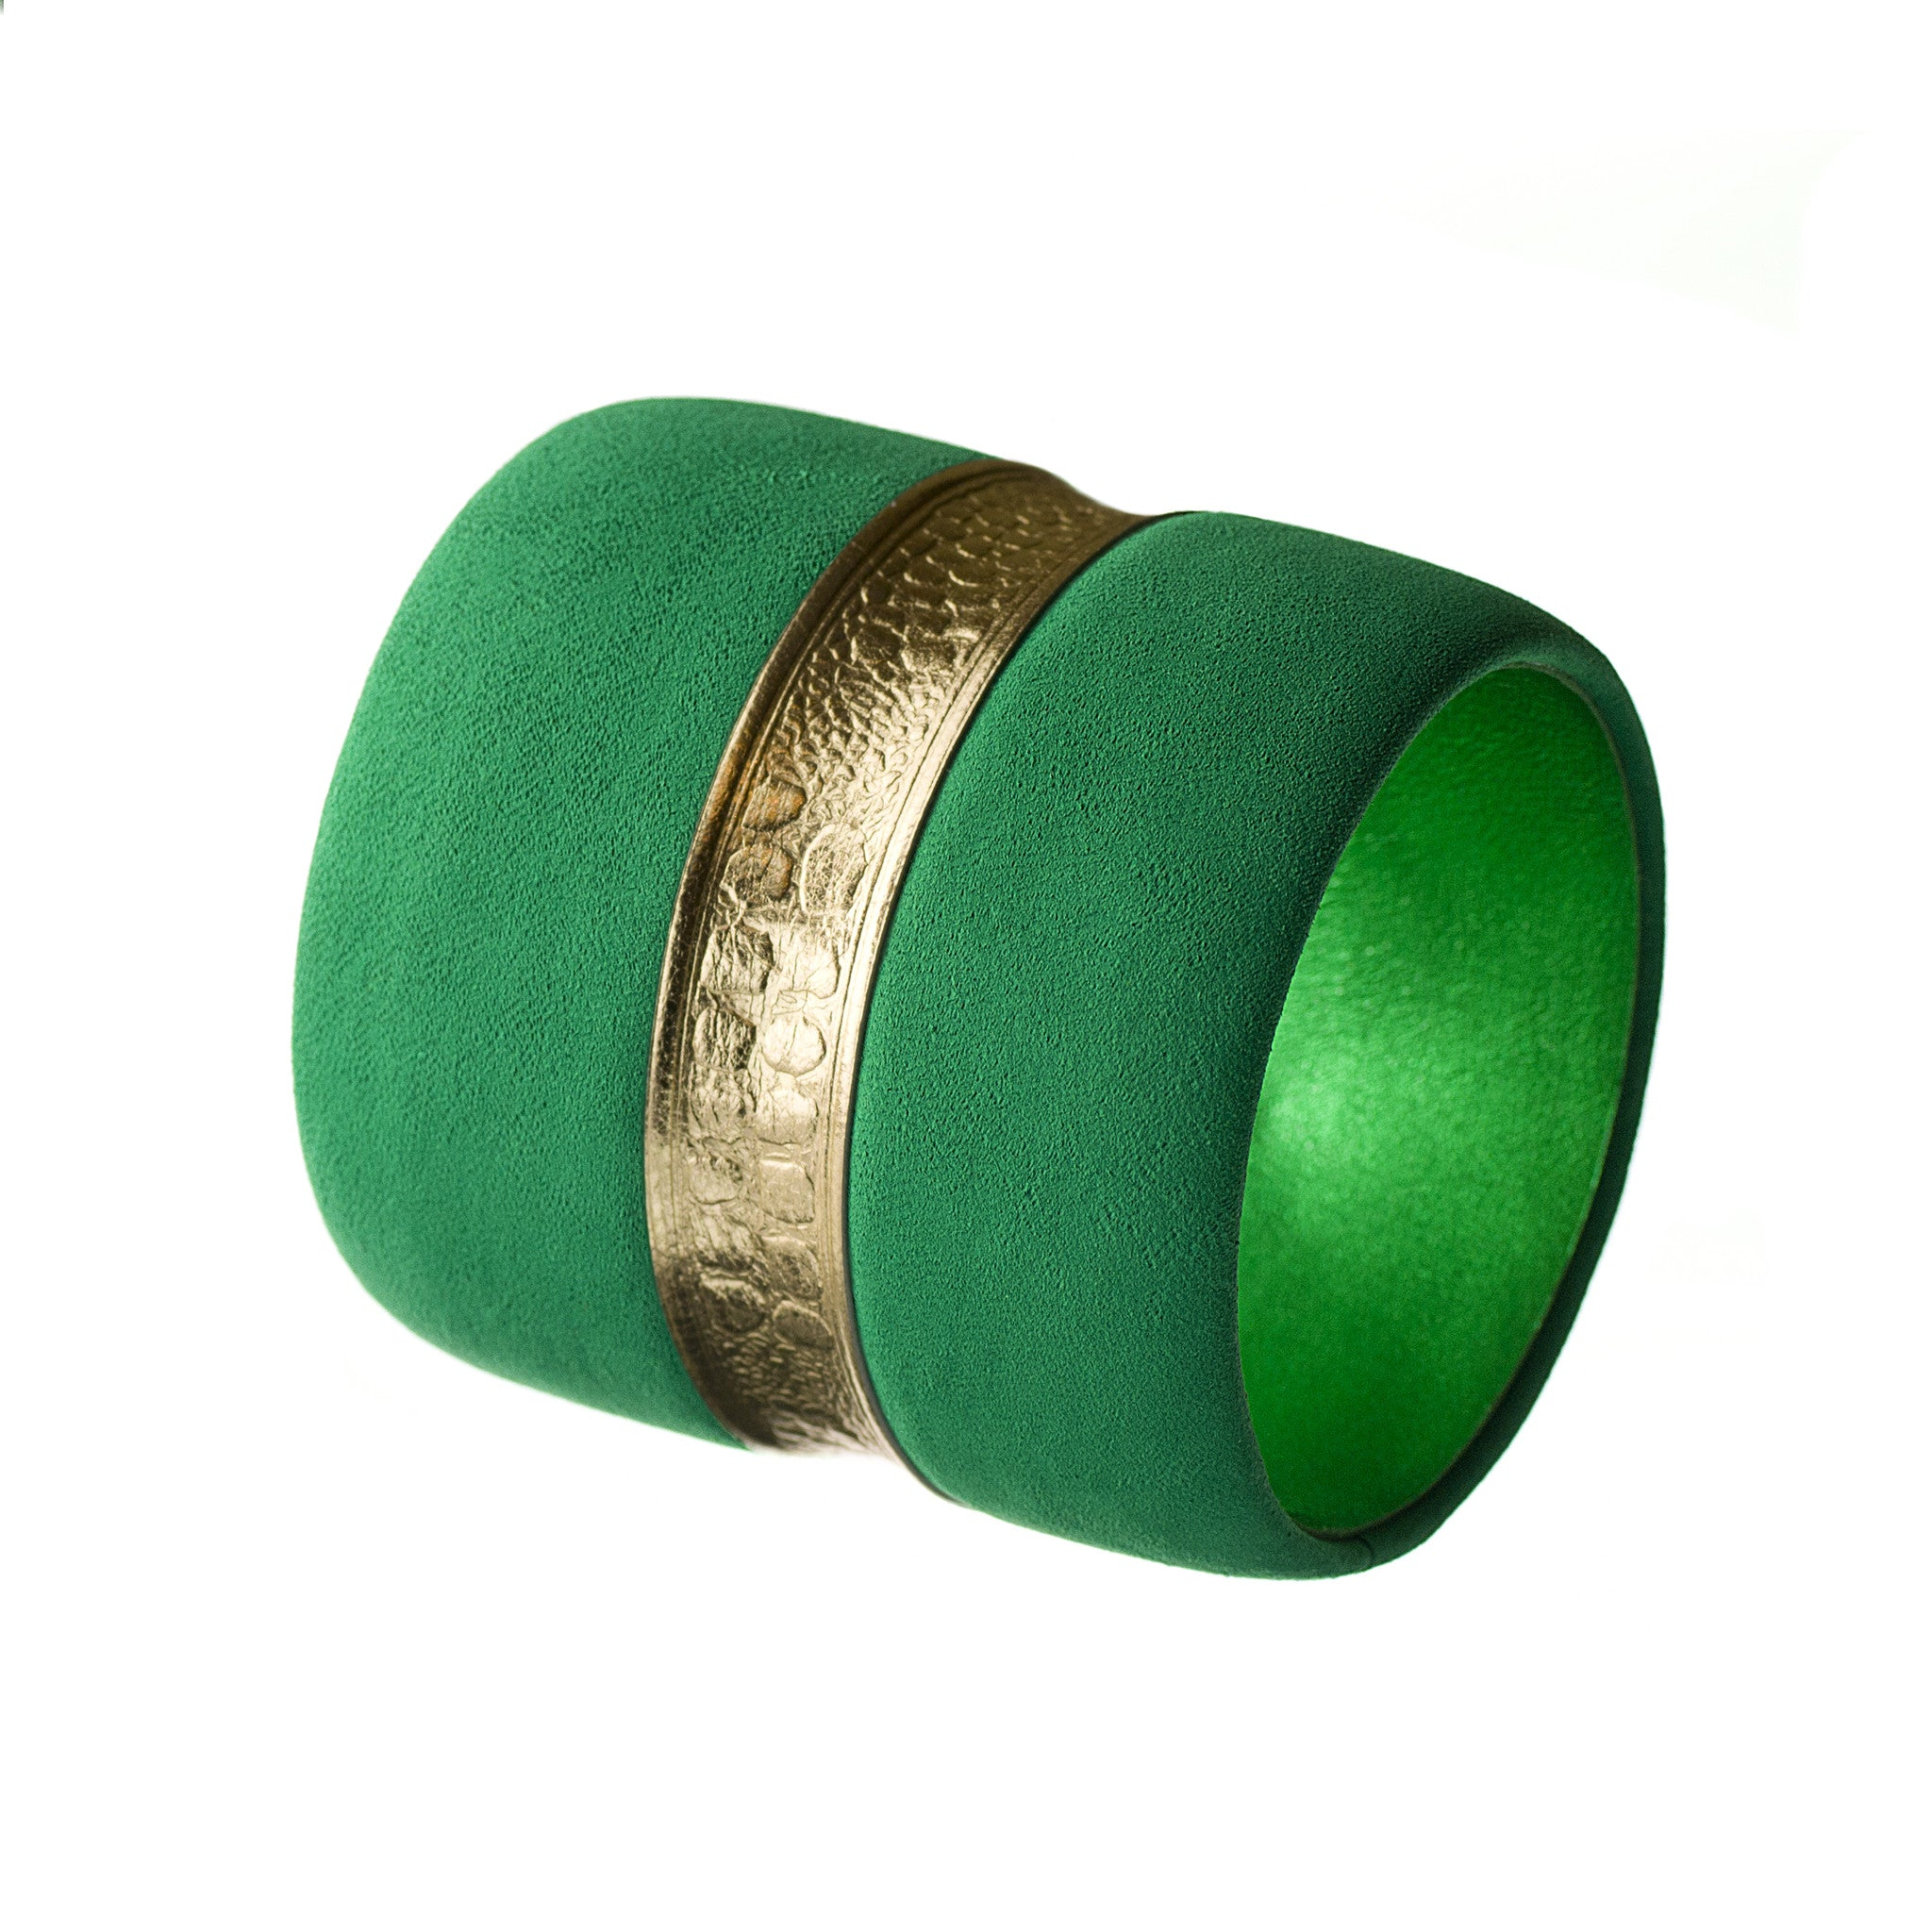 The Chloe ~ Large Chunky Emerald Green Nubuck and Gold Embossed Leather Bracelet